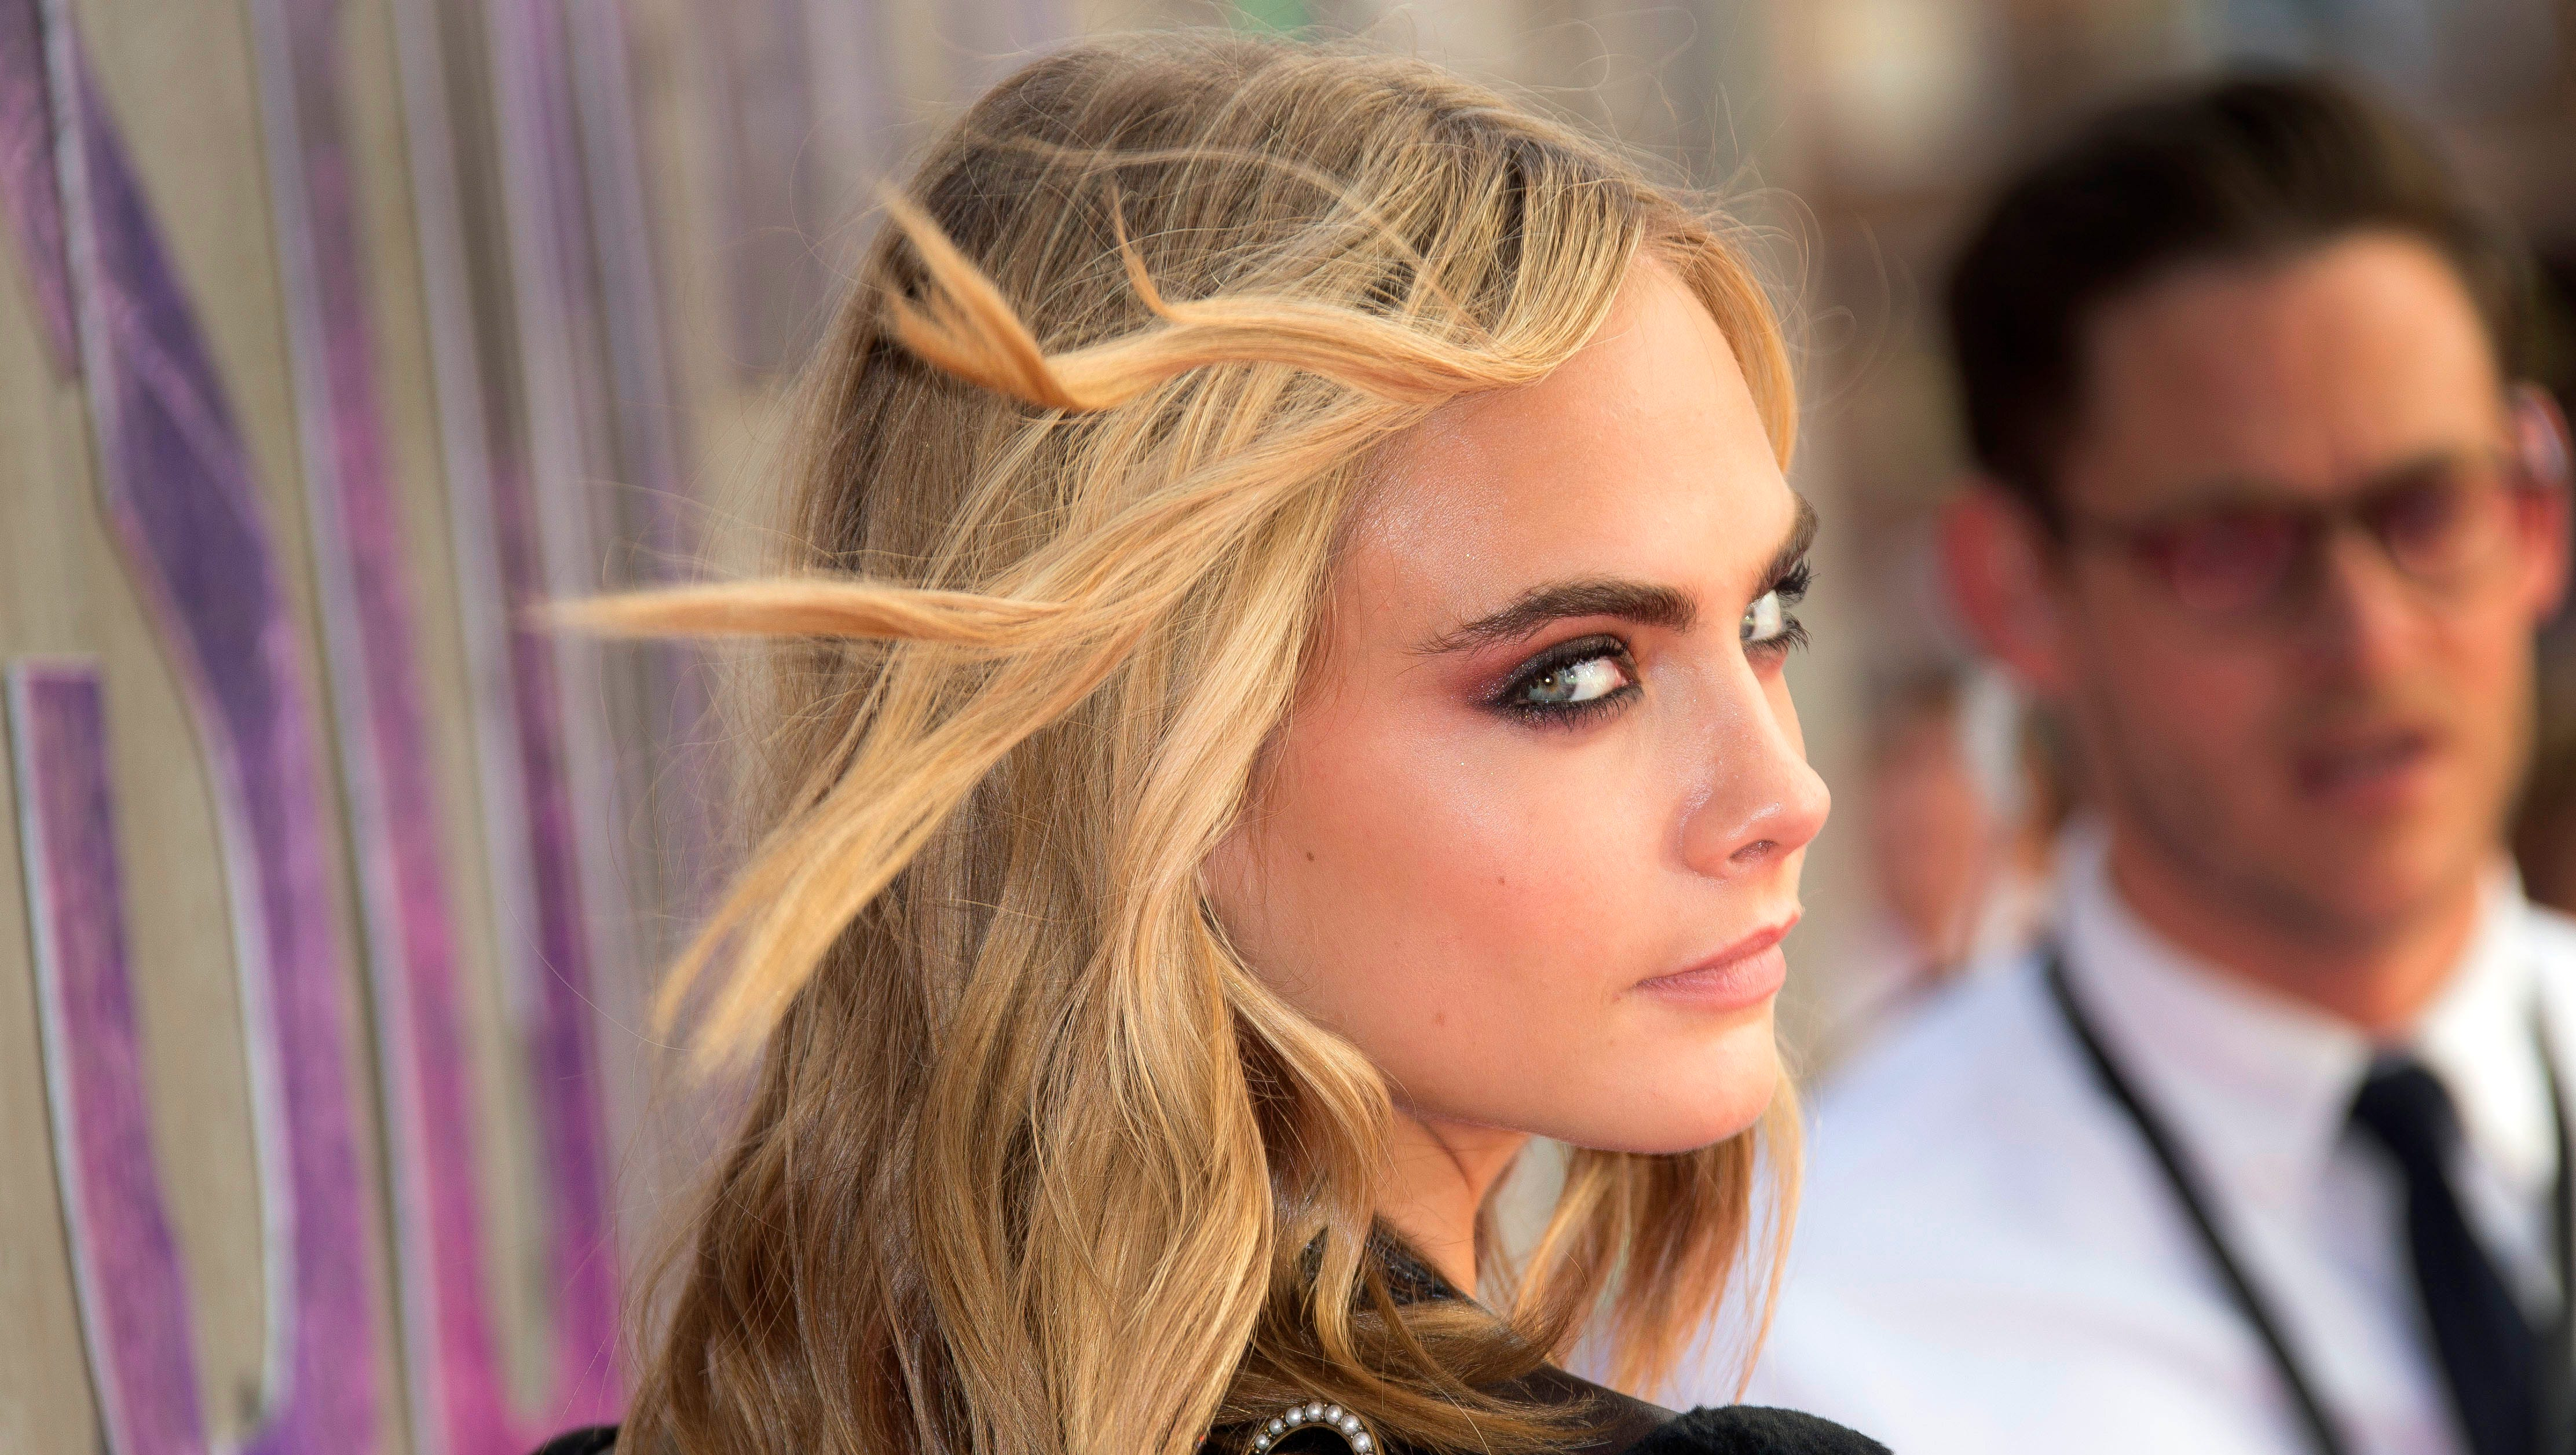 Cara Delevingne Turns 24 An Ode To Her Iconic Eyebrows